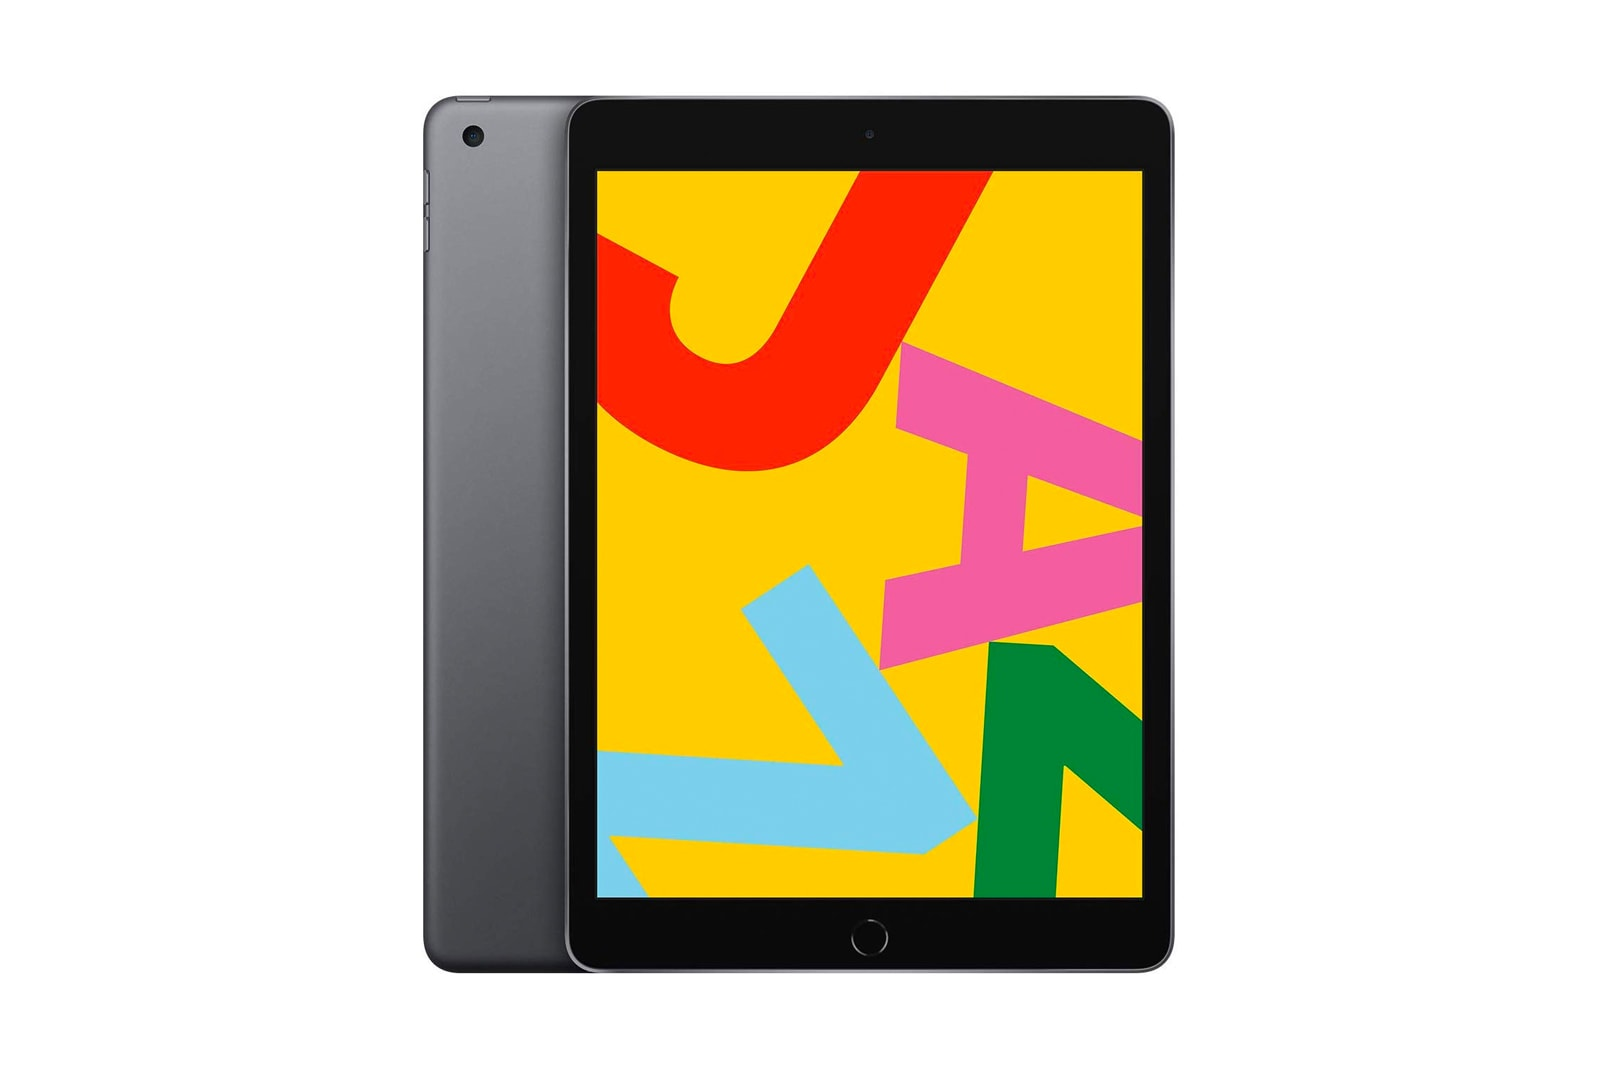 Apple iPad (7th generation, 32 GB)